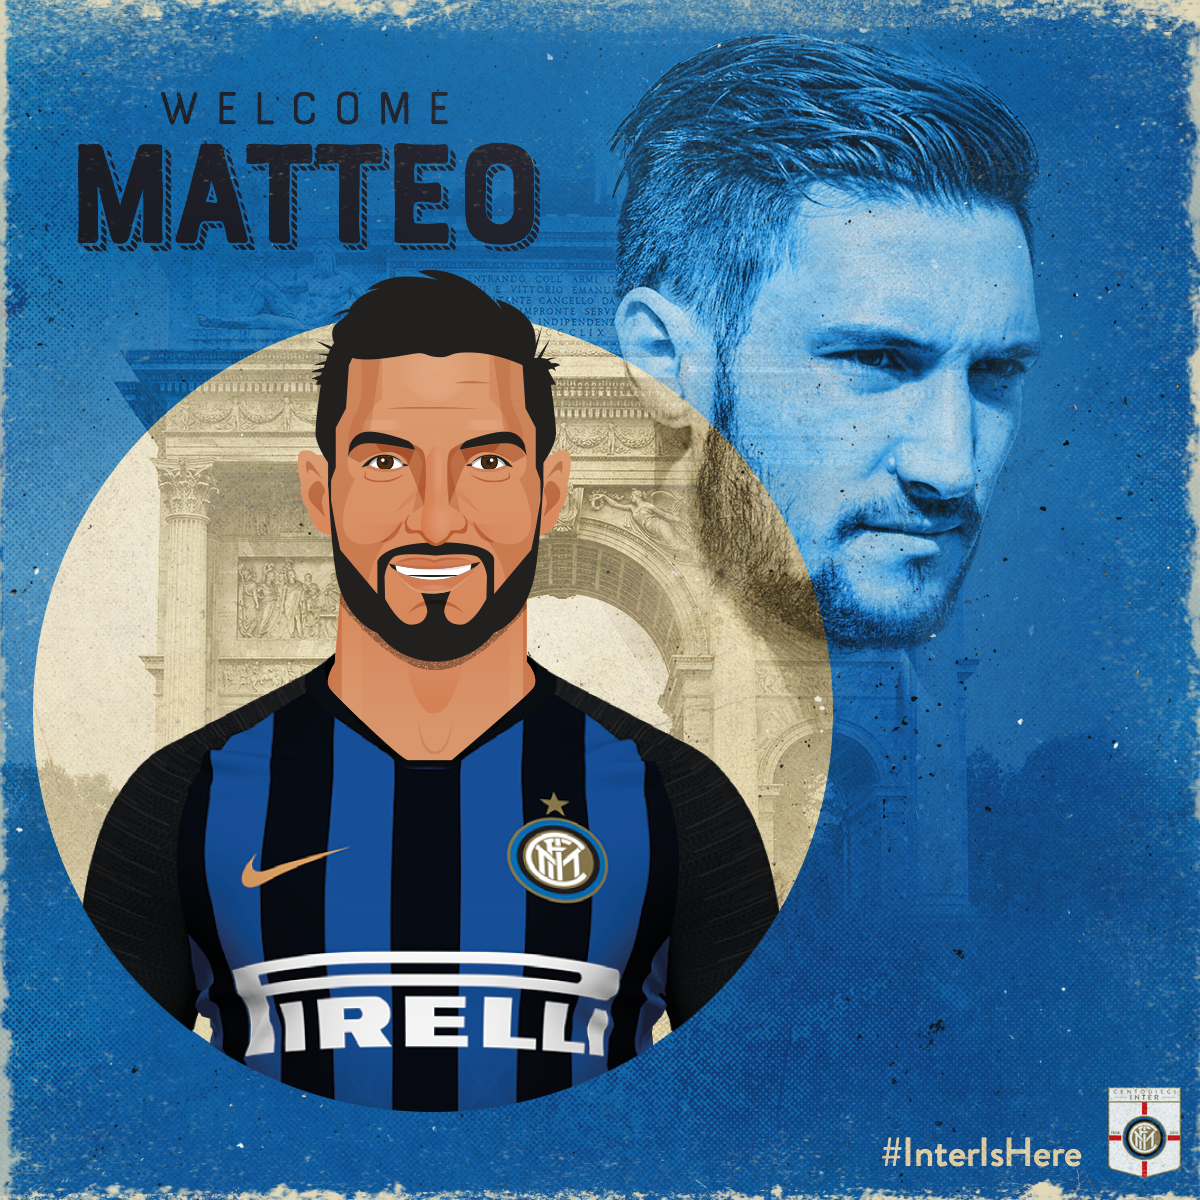 Matteo Politano   The exciting young right wing back has initially been brought in on loan from Sassulo with an option to buy at the end of the season. An Italy U21 international, Politano was coveted by a number of top clubs but chose Inter.